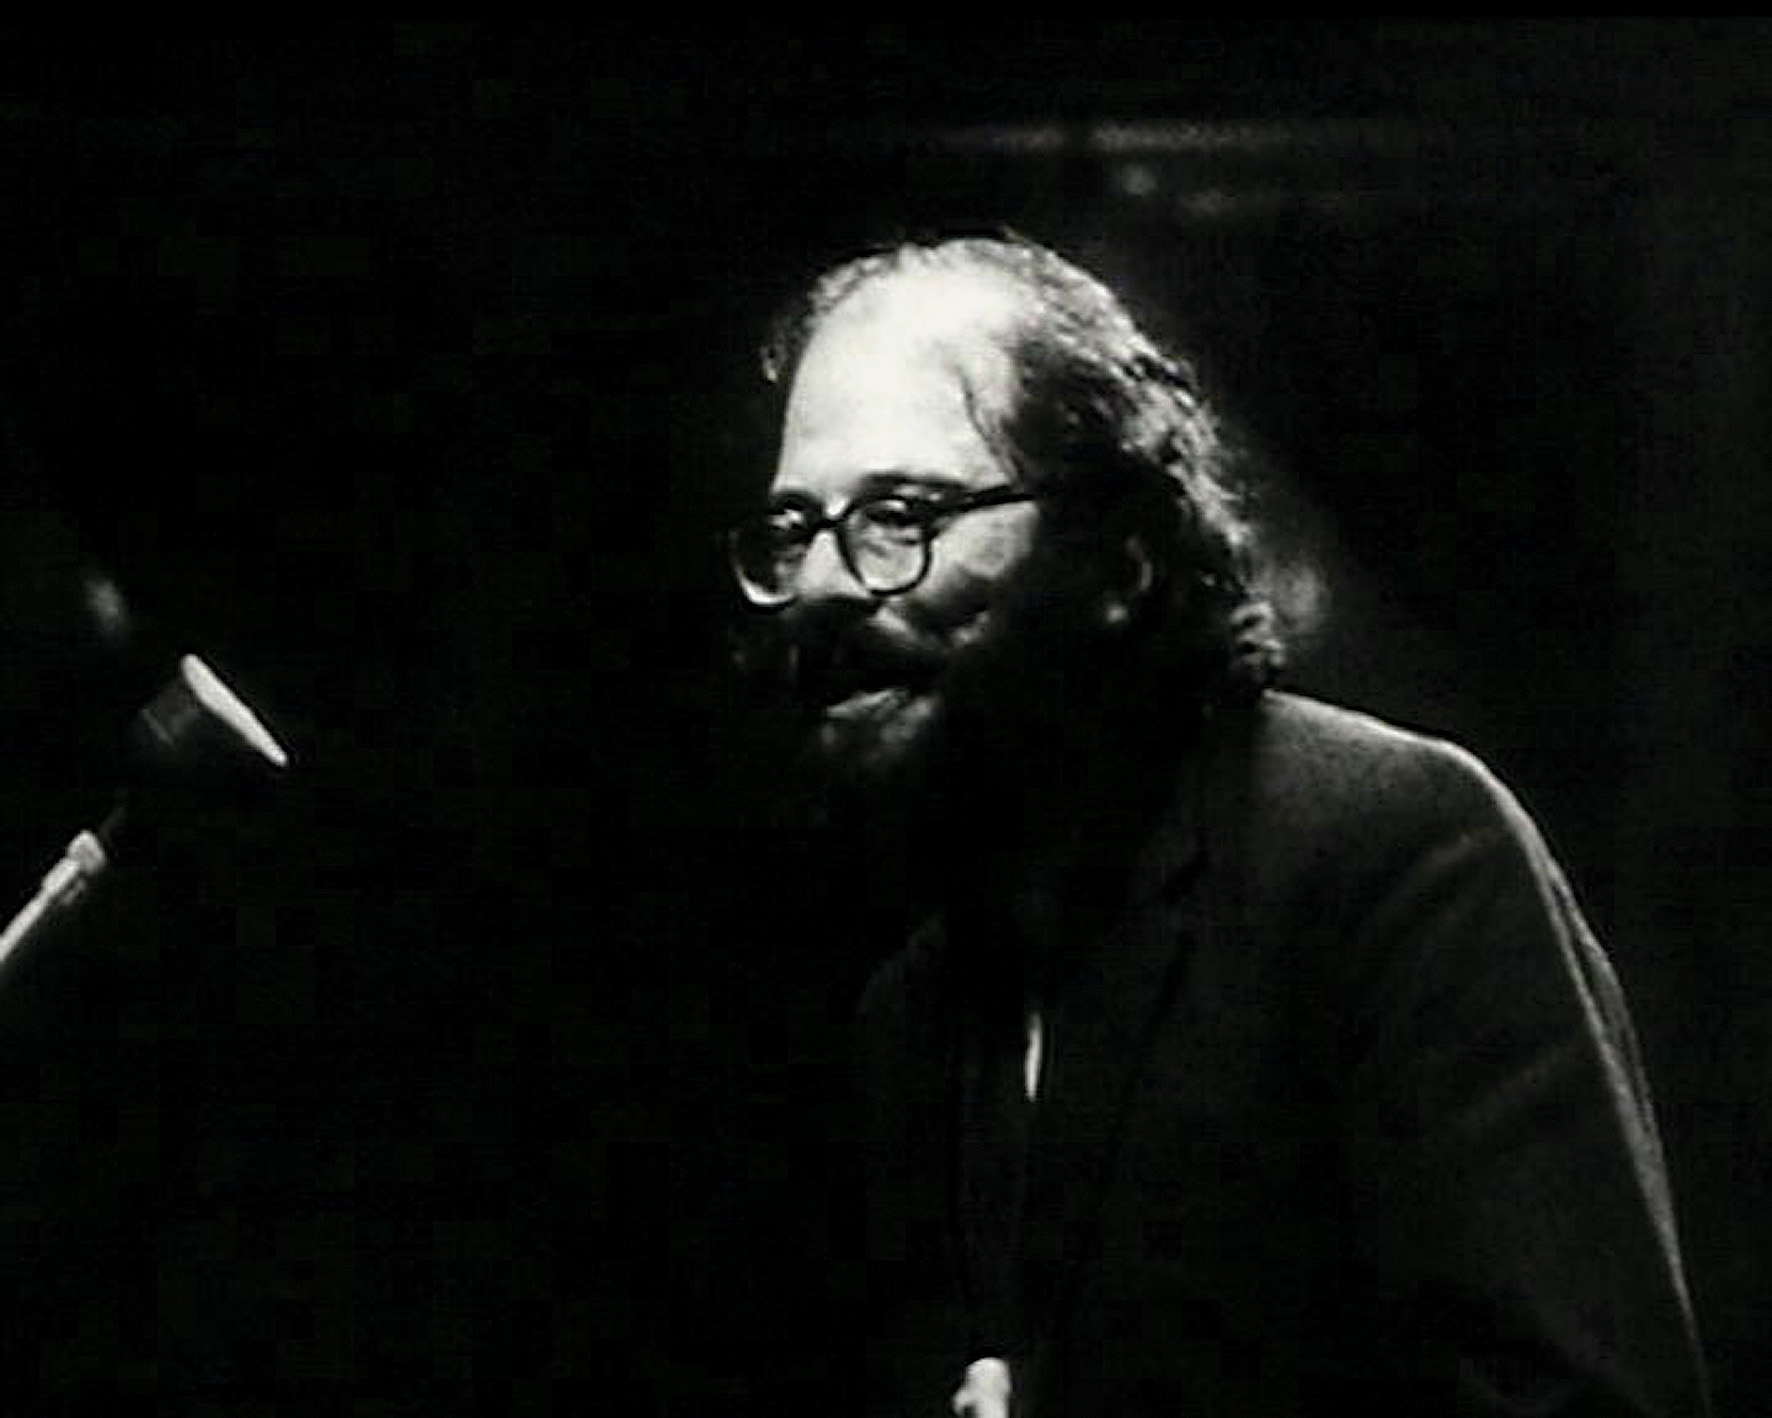 Wholly Communion  (1965), Peter Whitehead, featuring Allen Ginsberg